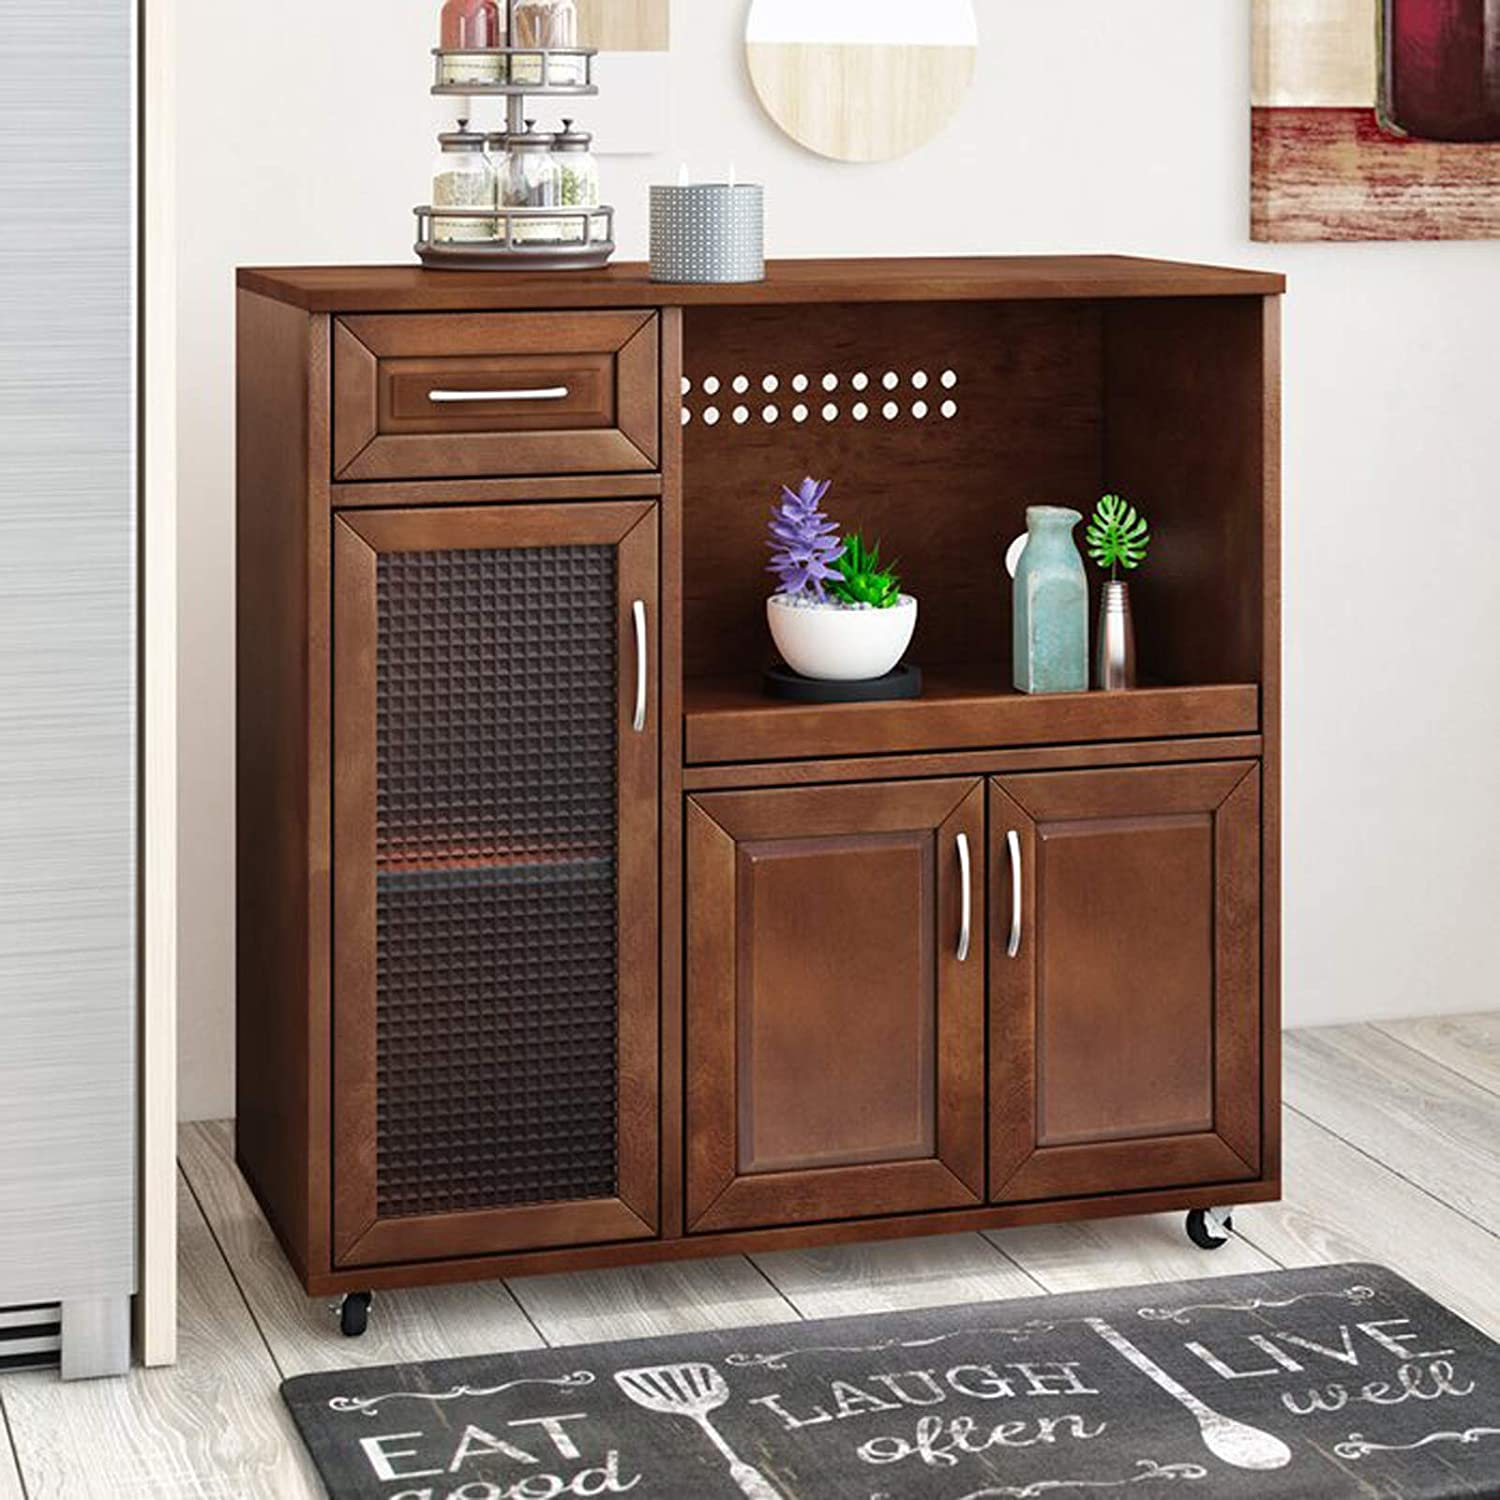 Contemporary Kitchen Pantry Cabinet Modern Microwave Cart Classic Silhouette Kitchen Cabinet Amazon Ca Home Kitchen